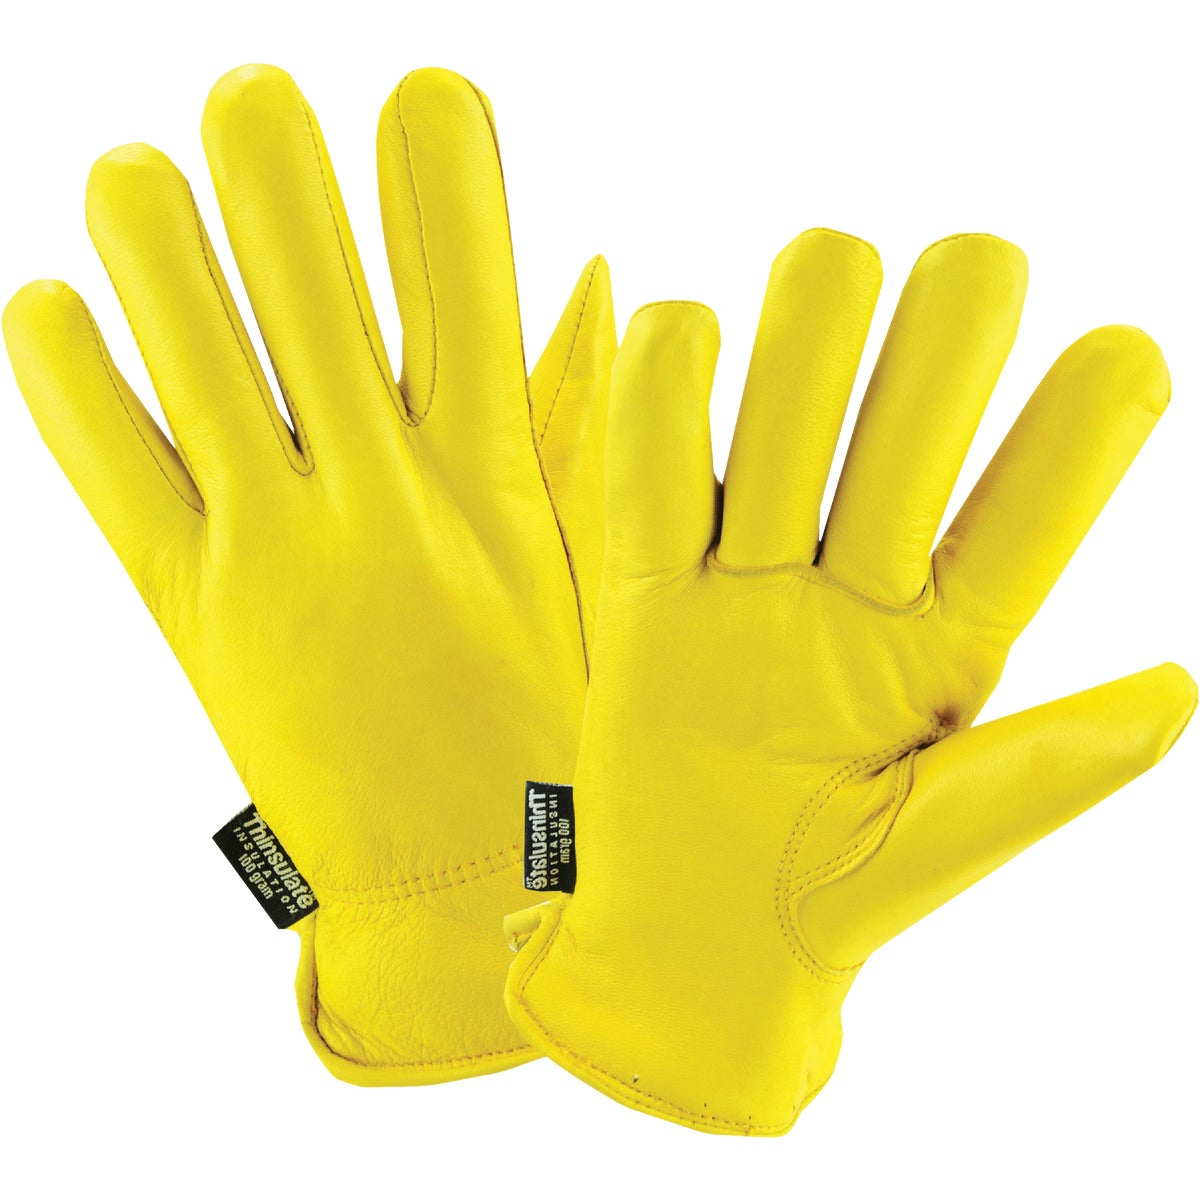 MED THERMOFILL DS GLOVE - 963M by Wells Lamont